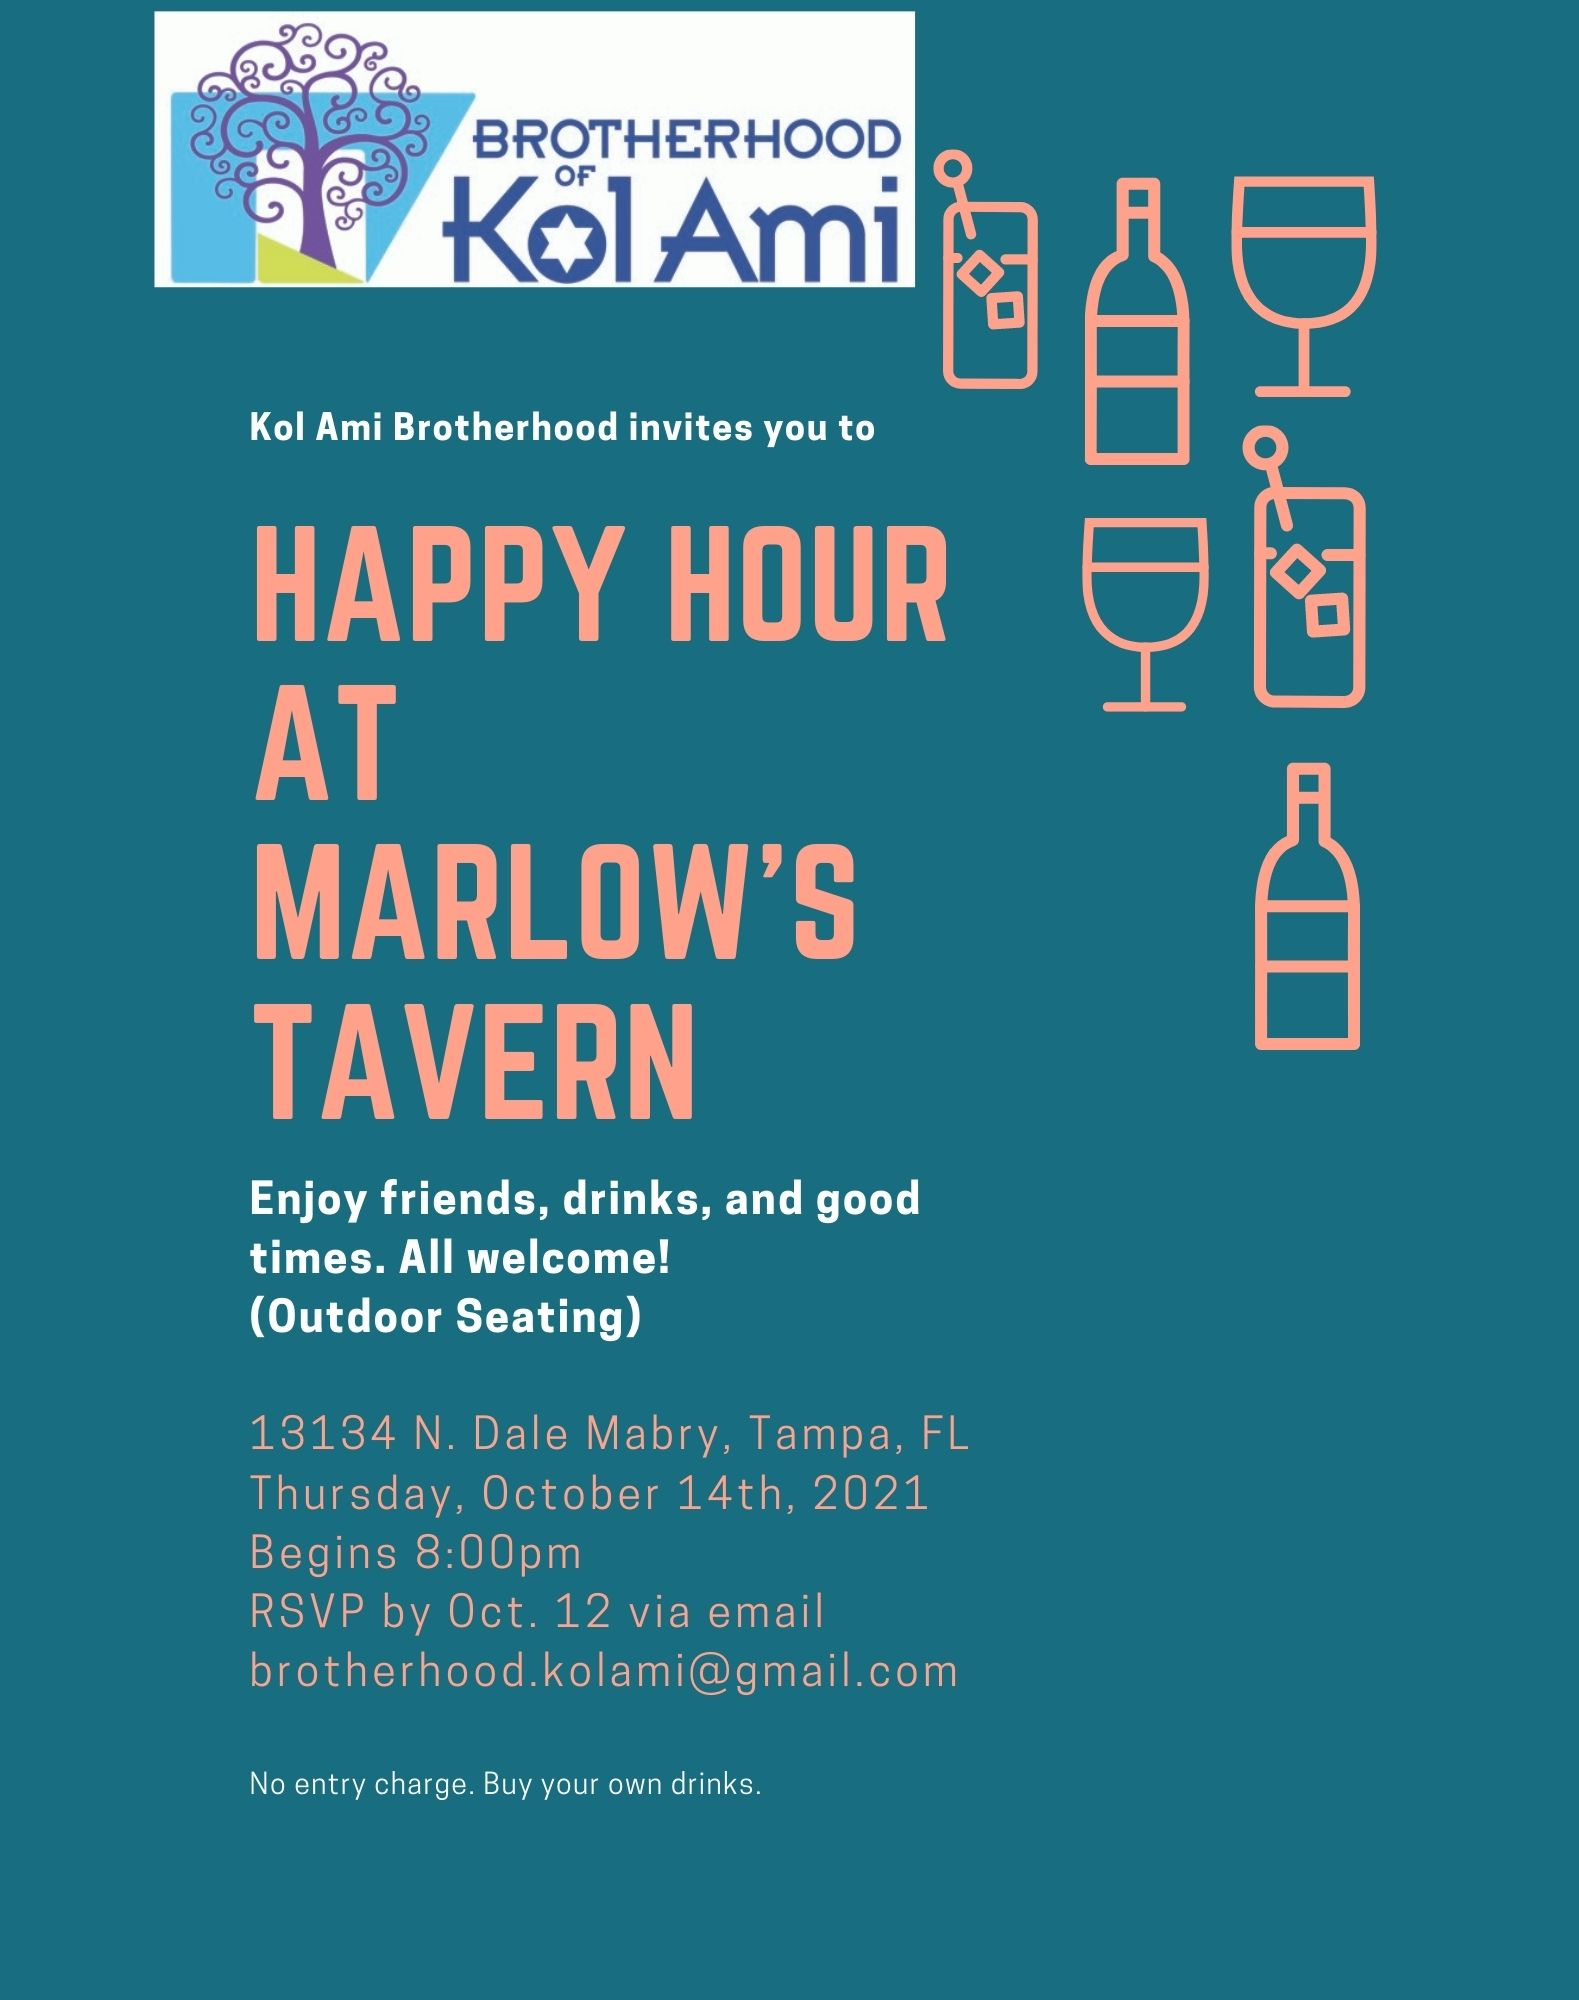 Banner Image for Brotherhood: Happy Hour at Marlow's Tavern